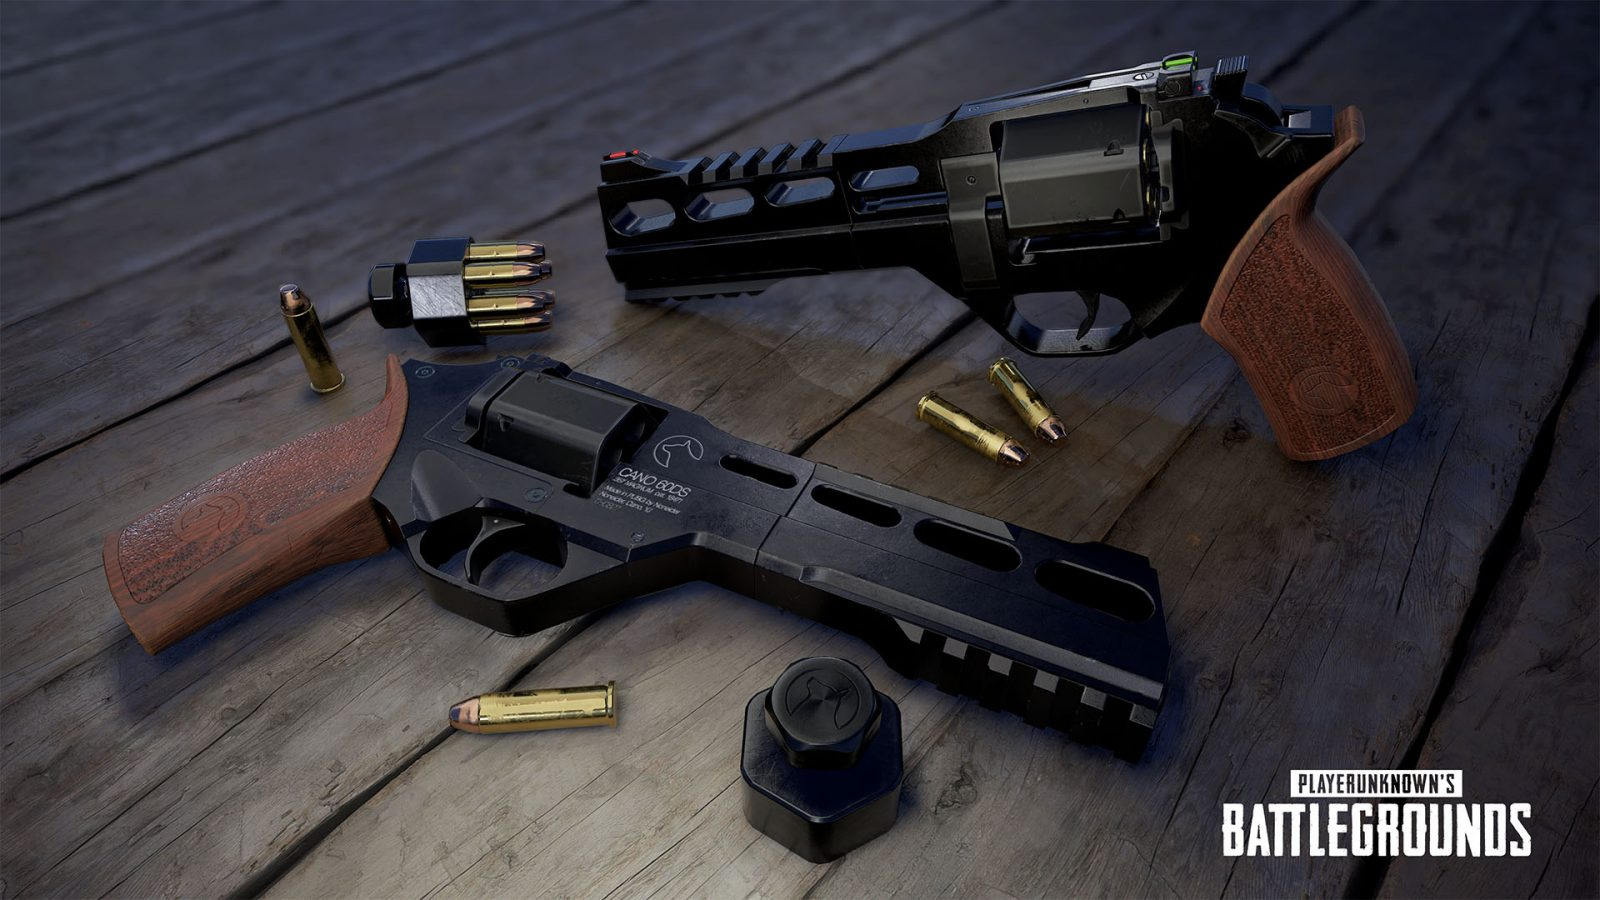 NVIDIA Exclusive: PUBG Desert Map Gets A New Weapon, The